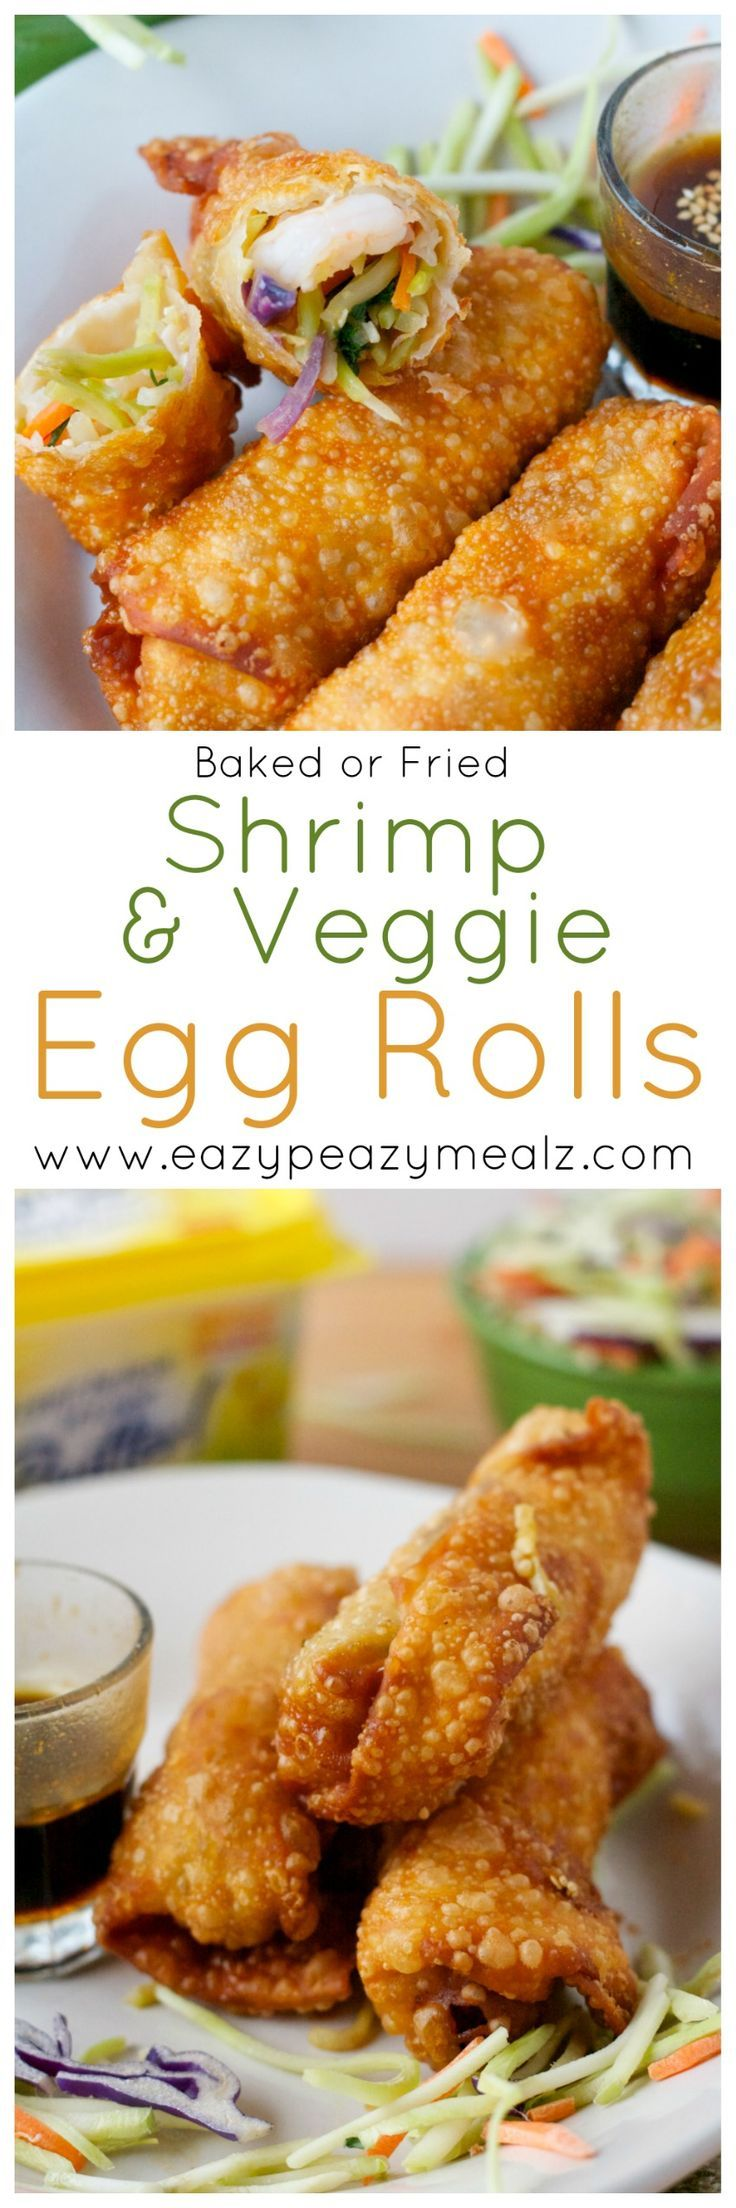 Shrimp and Veggie Egg Rolls: These can be baked or fried and have a secret ingredient that makes them extra crunchy and delicious! Skip take out, make these babies! #sp -Eazy Peazy Mealz